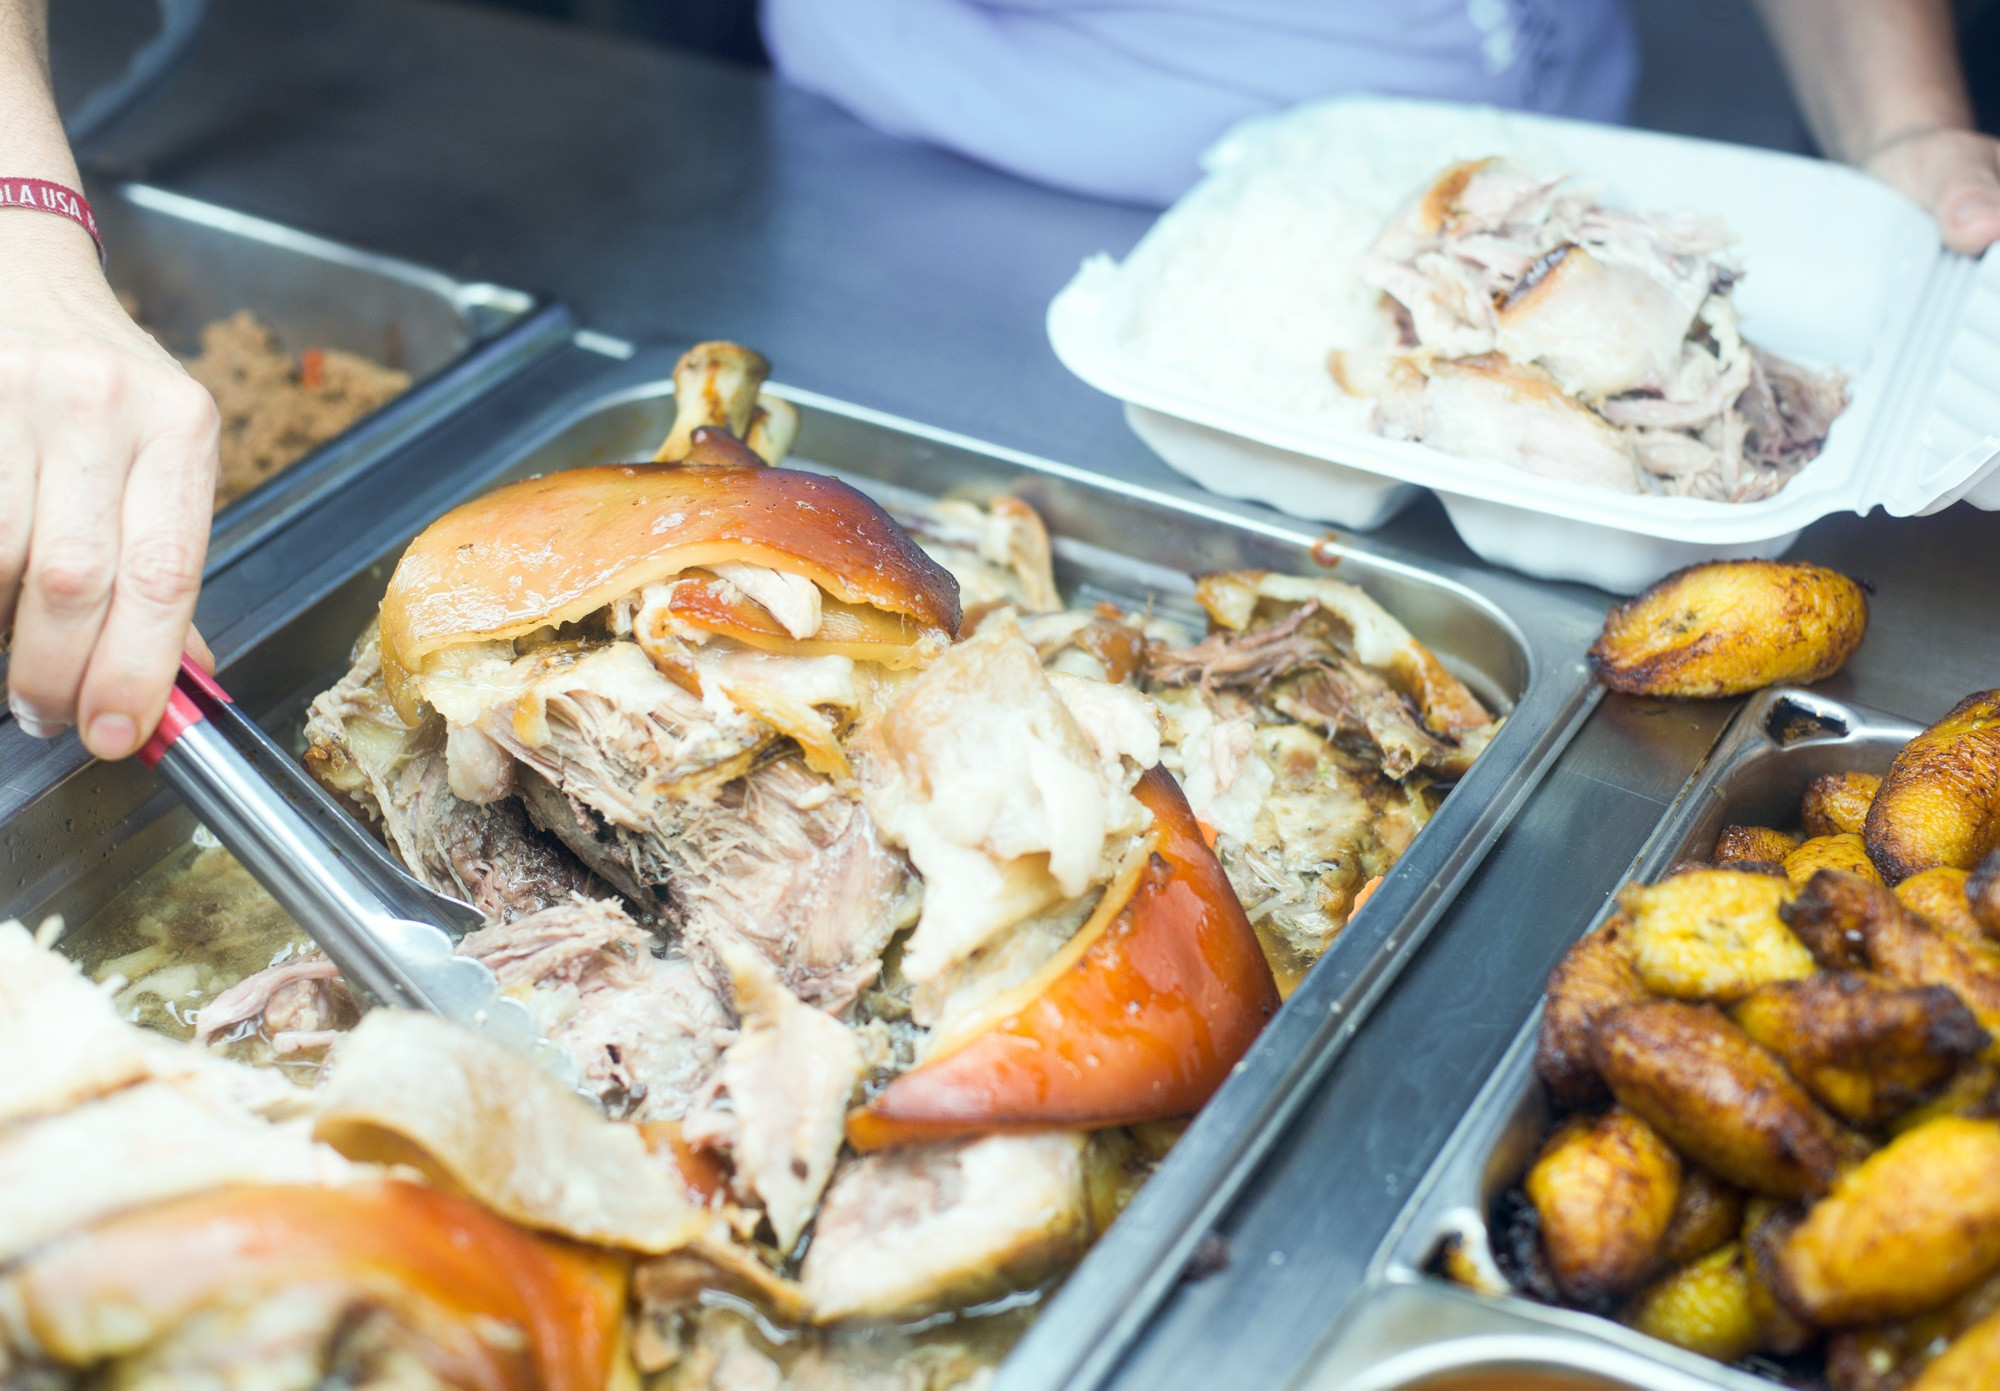 Las Olas Cafe serving lechon